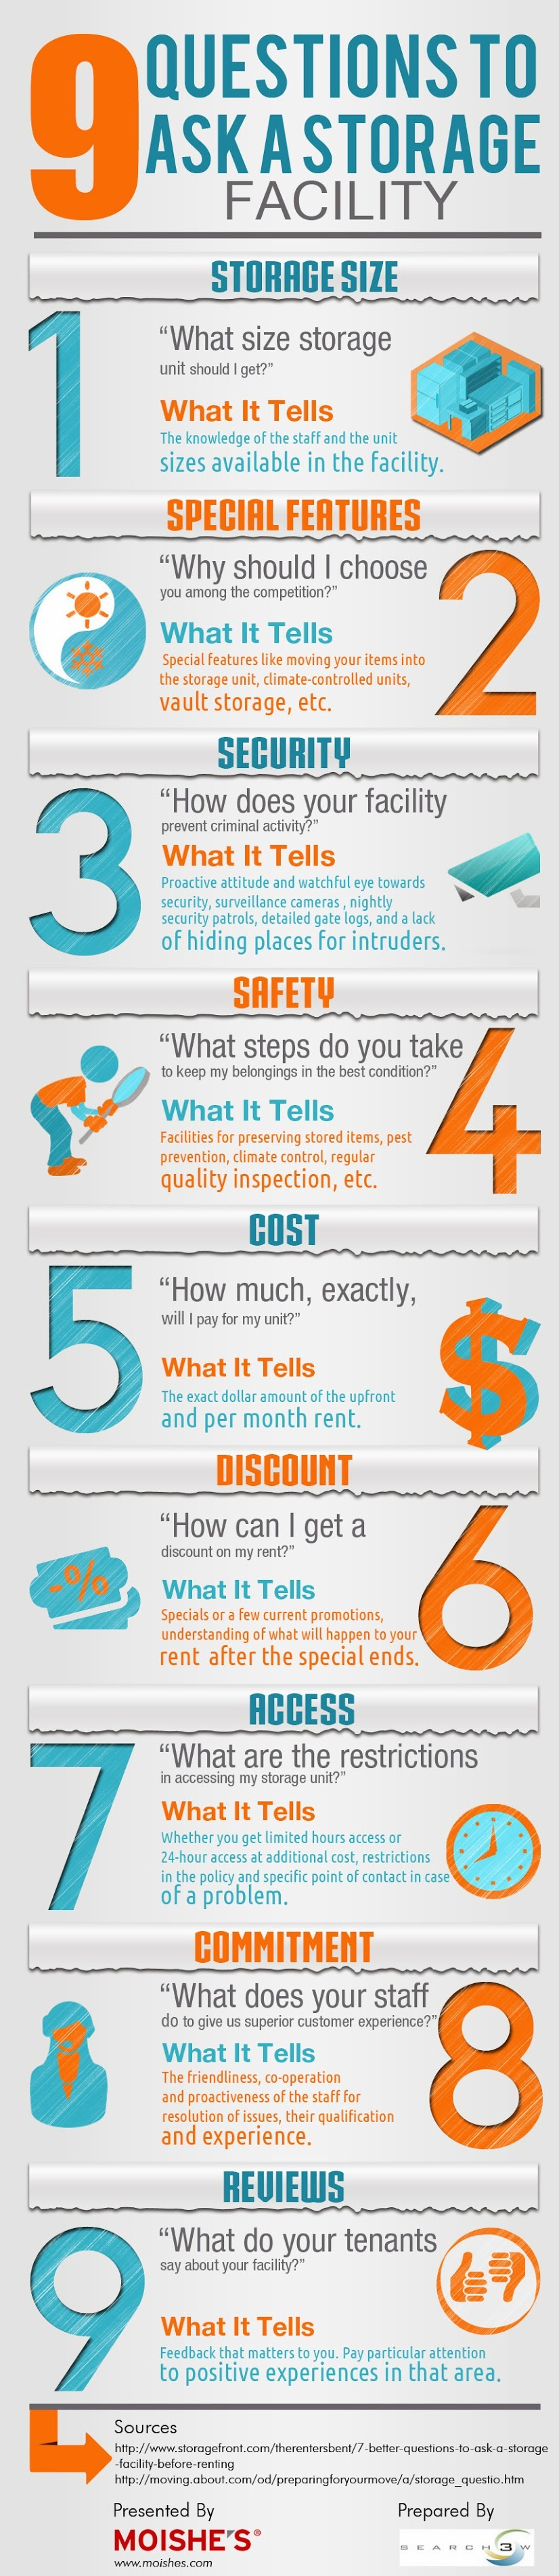 Infographic: 9 Questions To Ask A Storage Facility